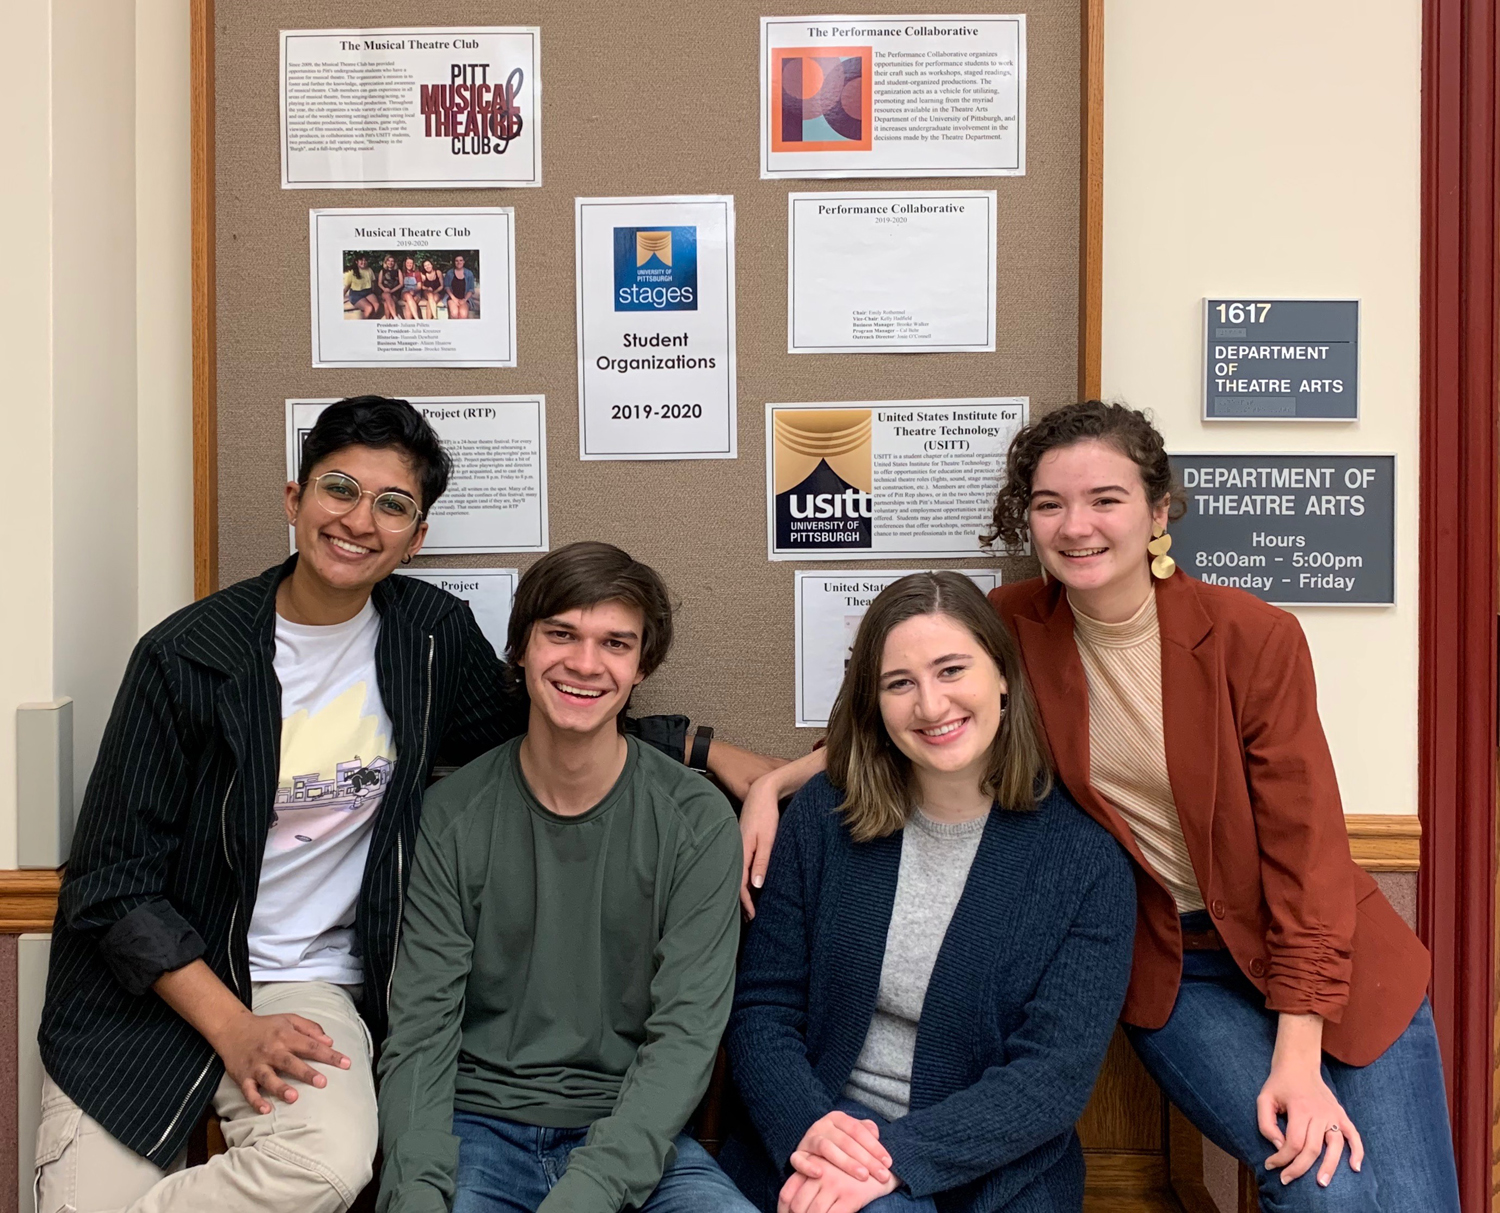 Performance Collaborative is a student-run club in the University's theater department that focuses on promoting student-created work.